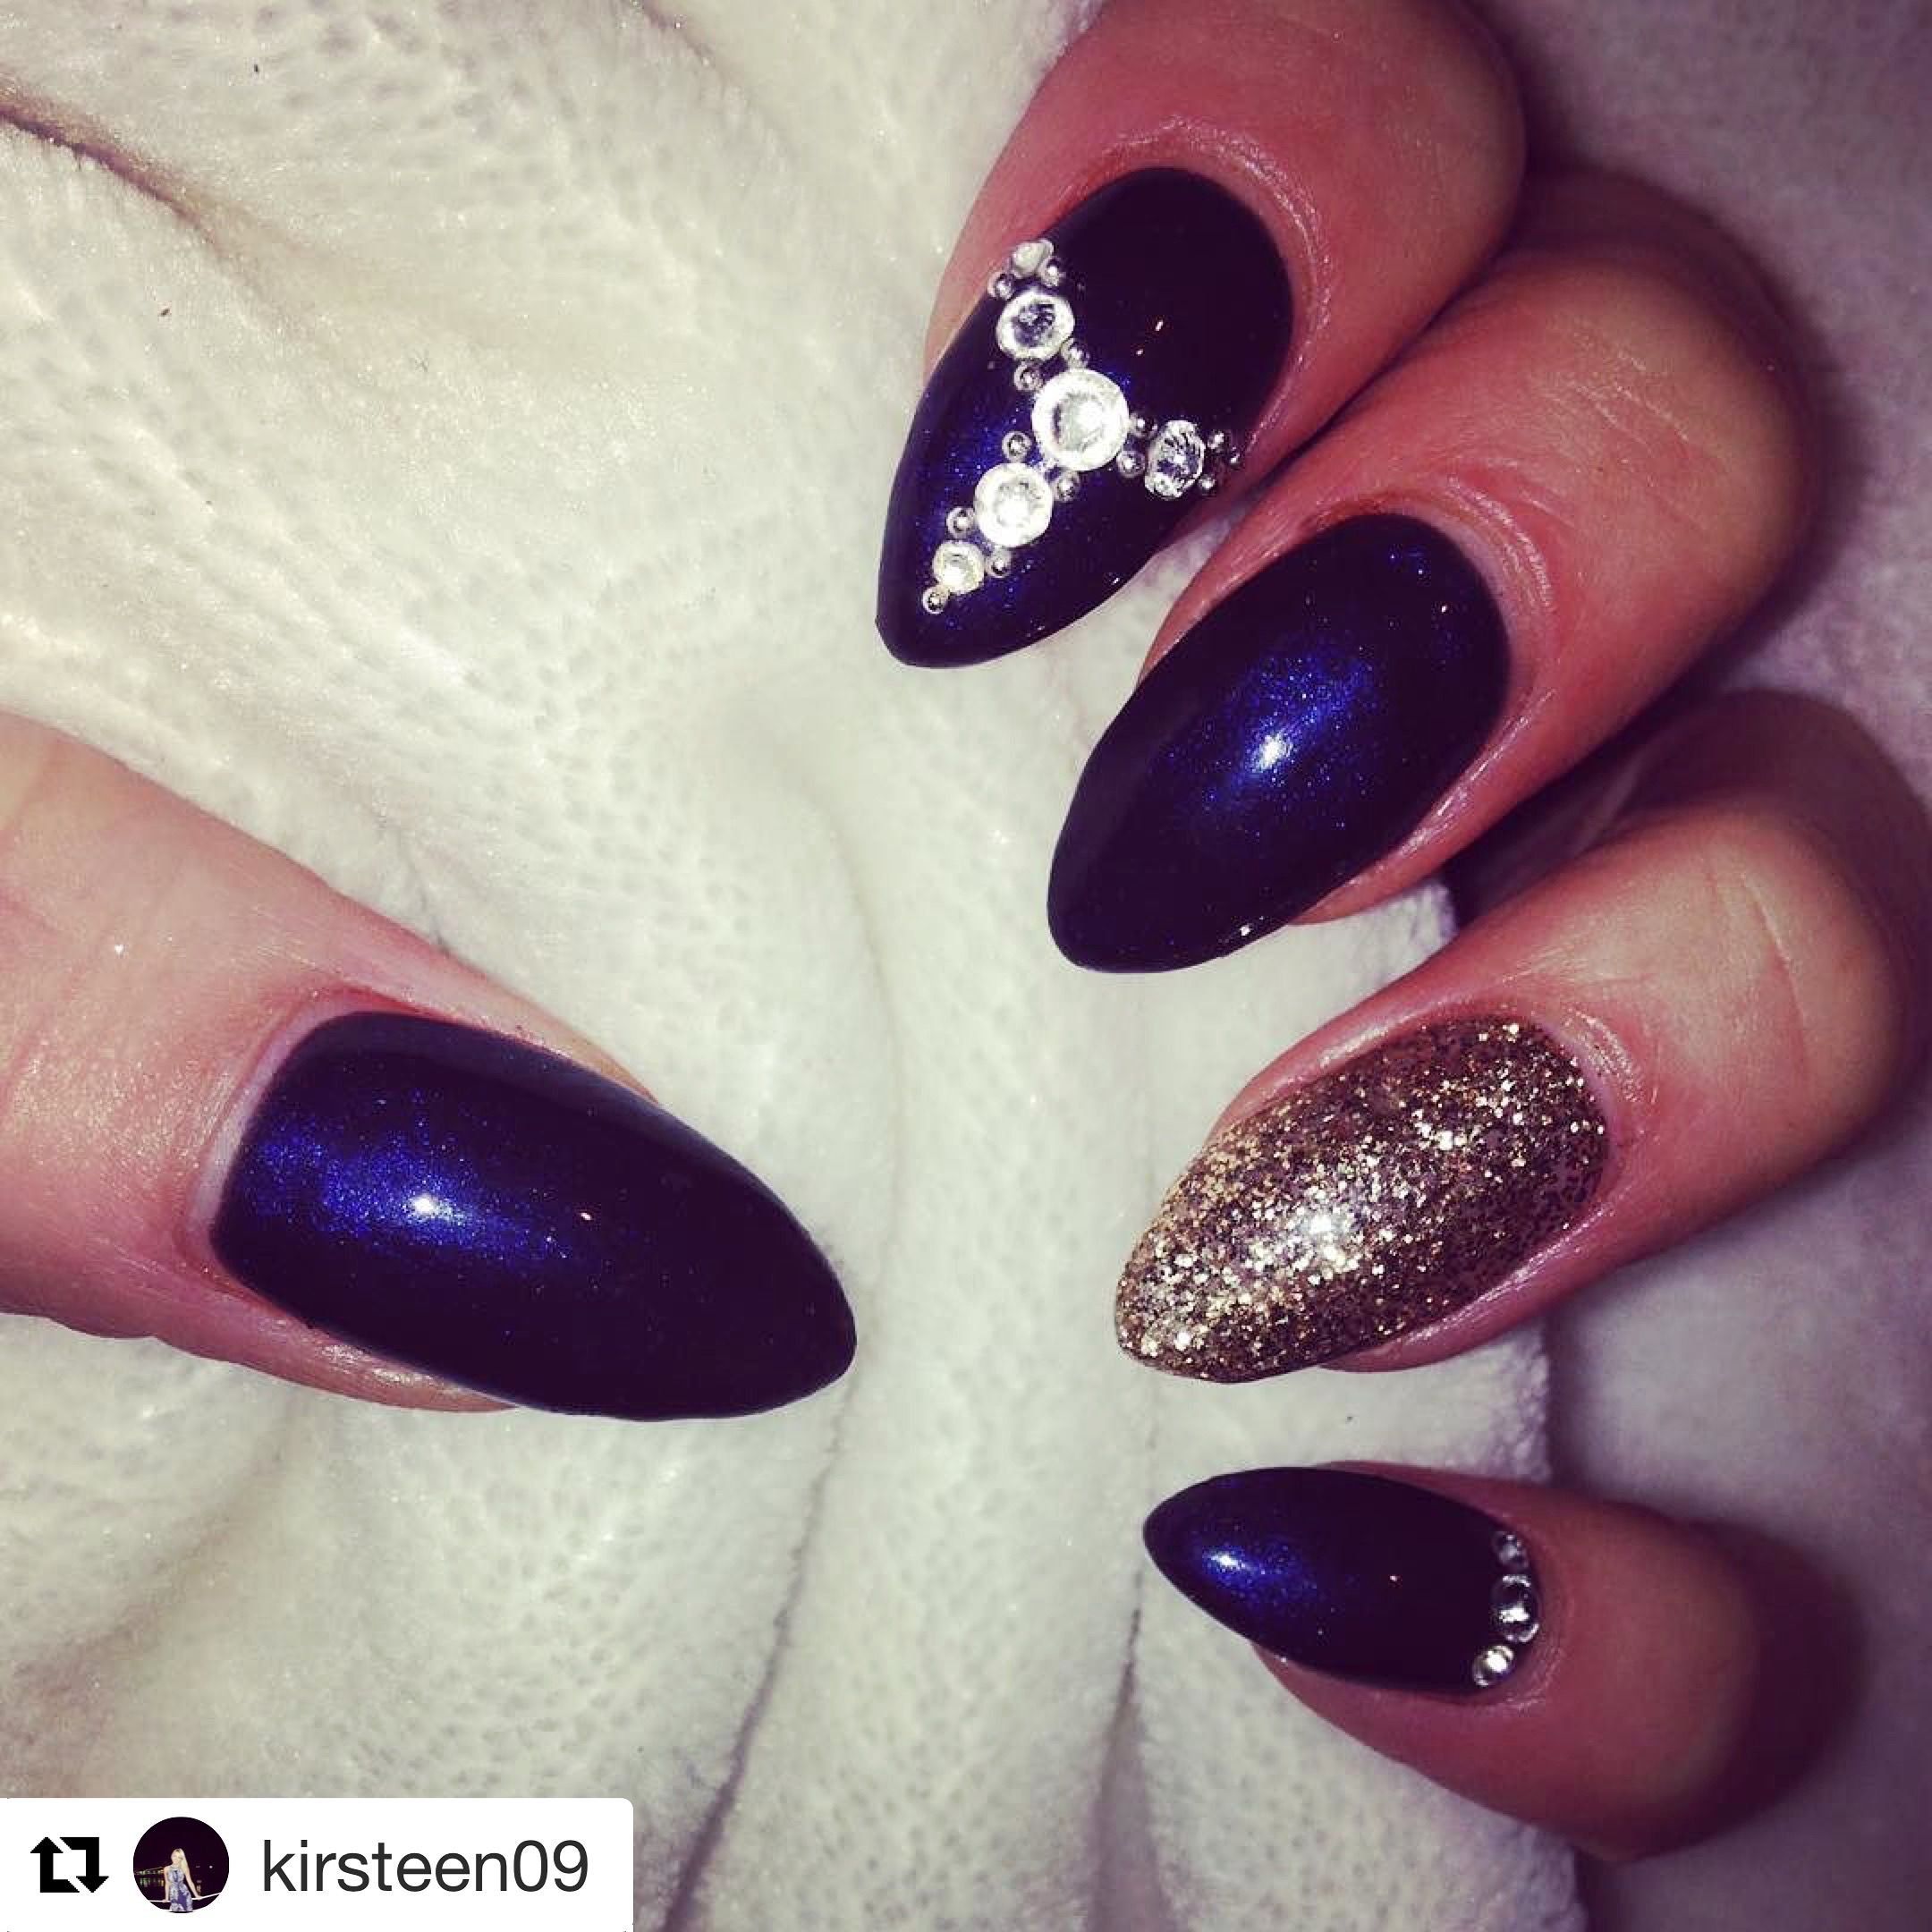 Calgel nails nail art nail design navy nails pointy swarovski calgel nails nail art nail design navy nails pointy swarovski prinsesfo Gallery